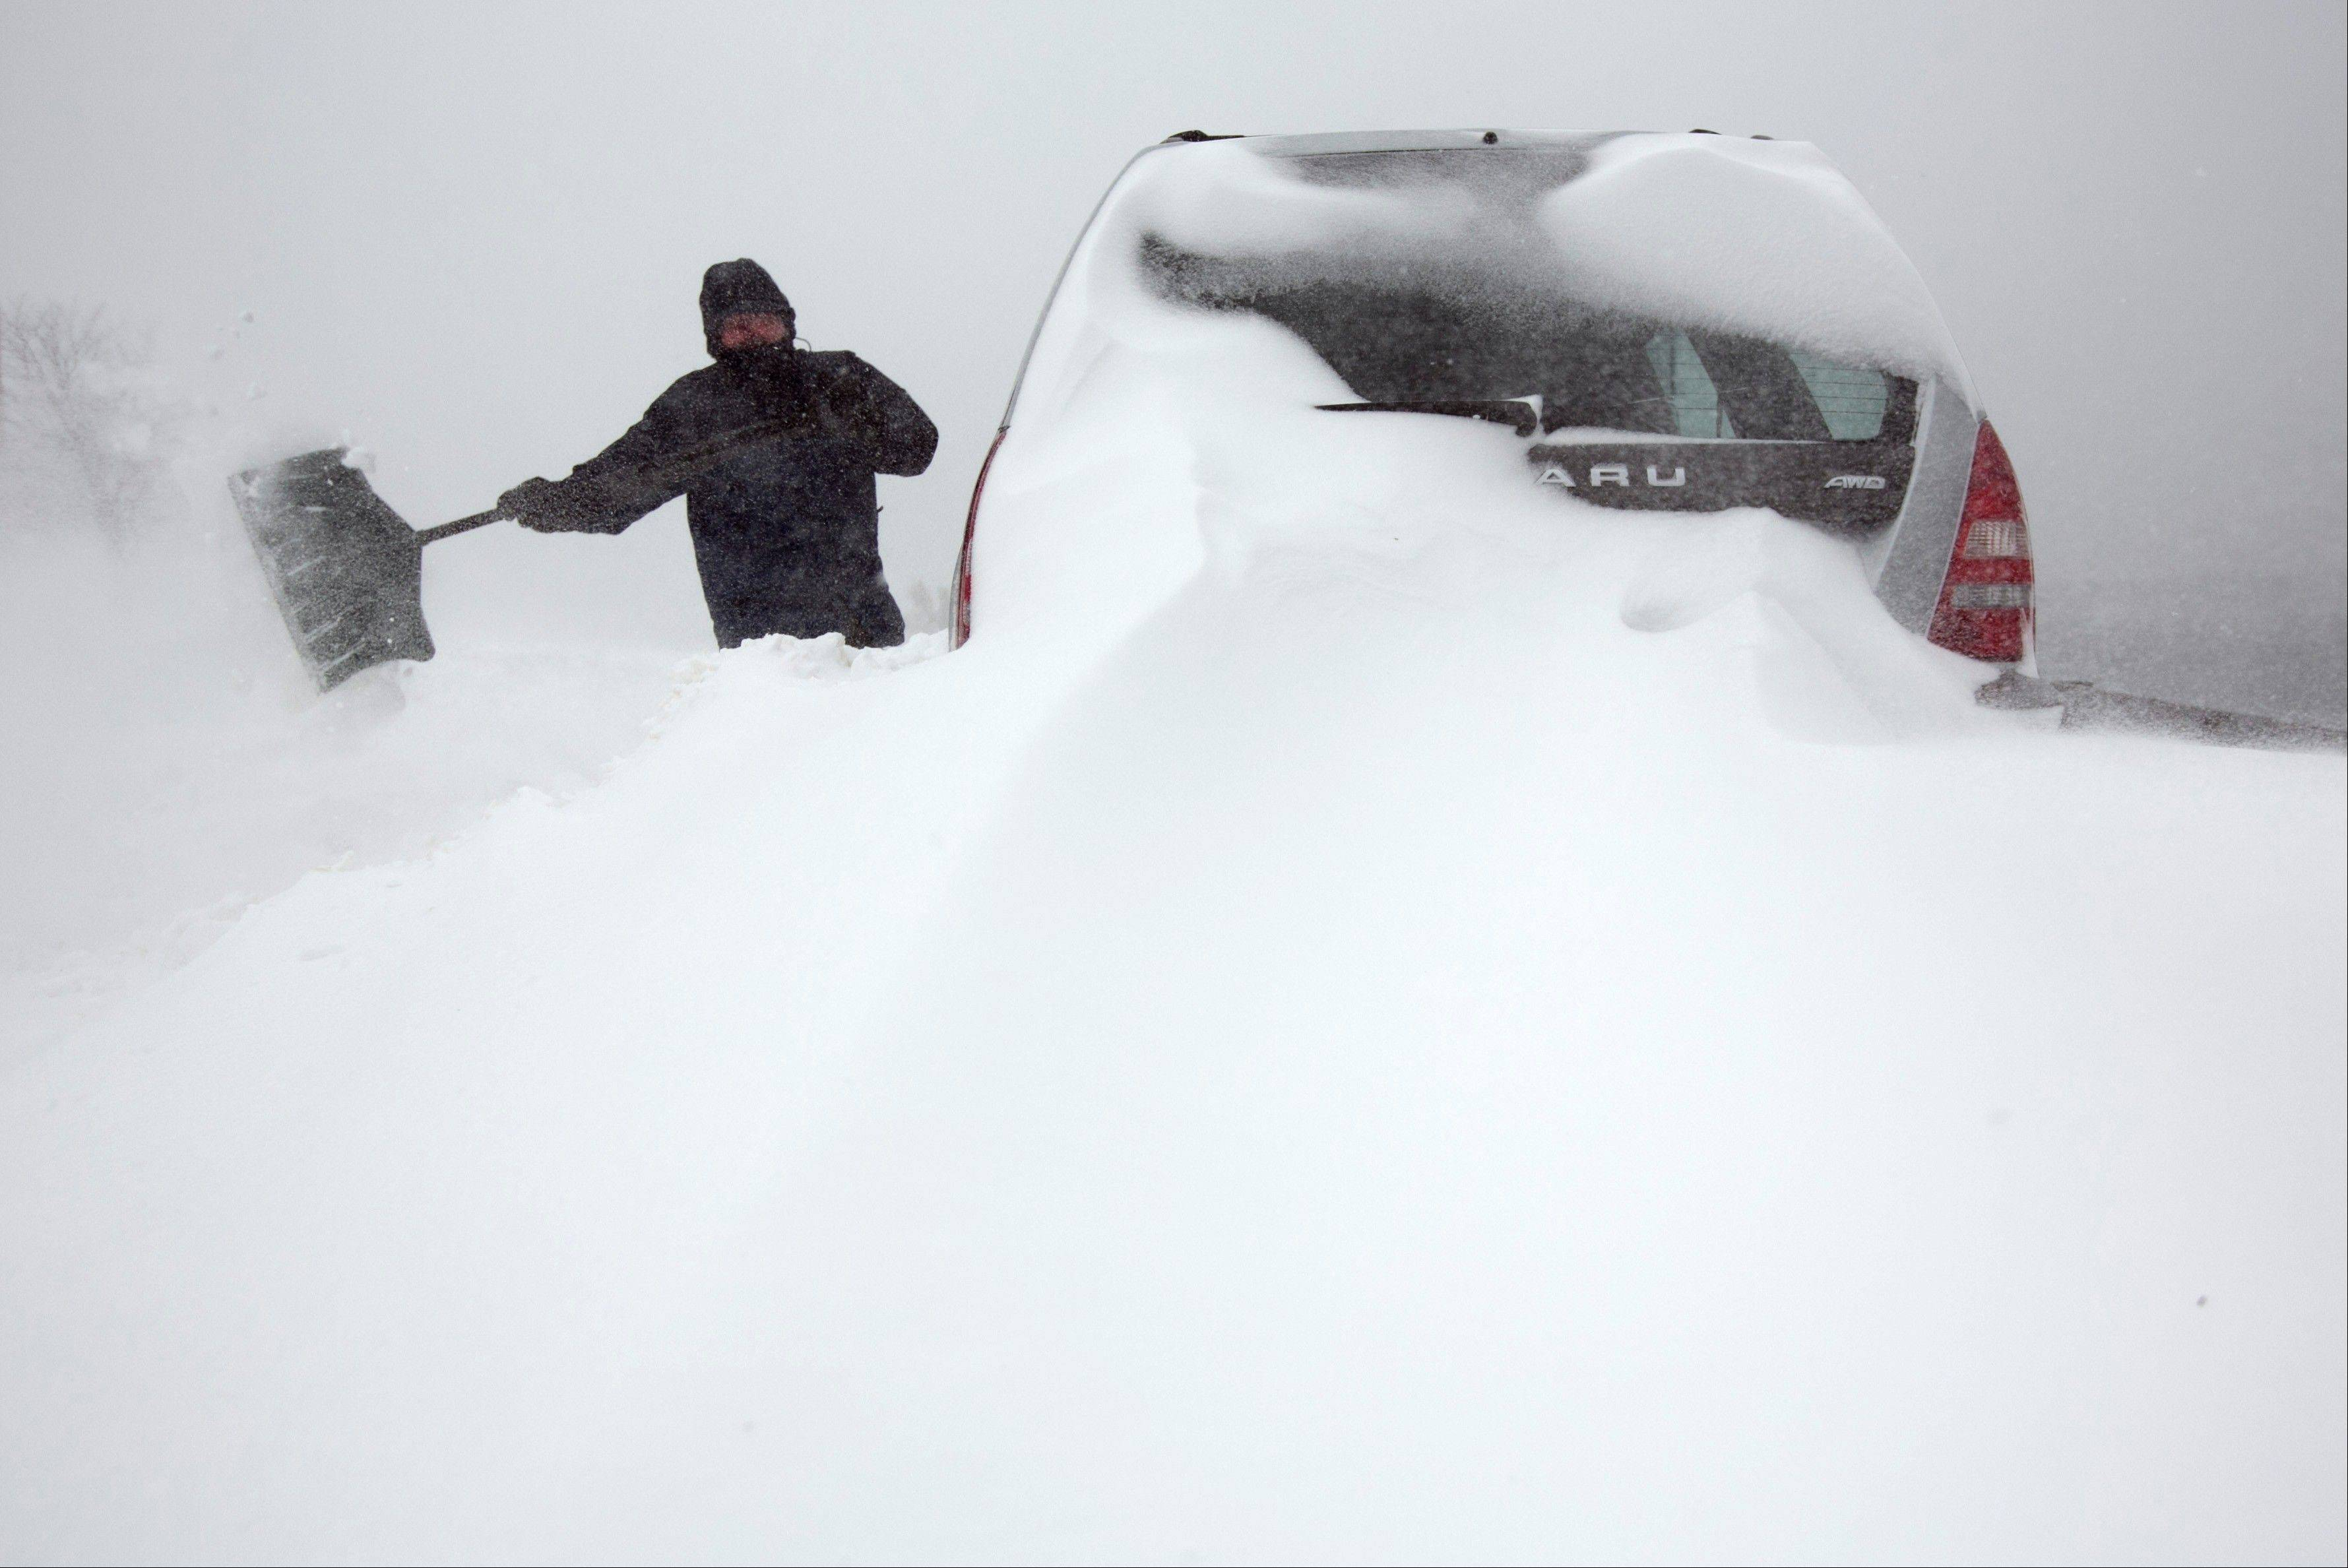 Steve Hull digs out his car after it was covered by drifting snow in Portland, Maine on Saturday, Feb. 9, 2013. A behemoth storm packing hurricane-force wind gusts and blizzard conditions swept through the Northeast overnight.